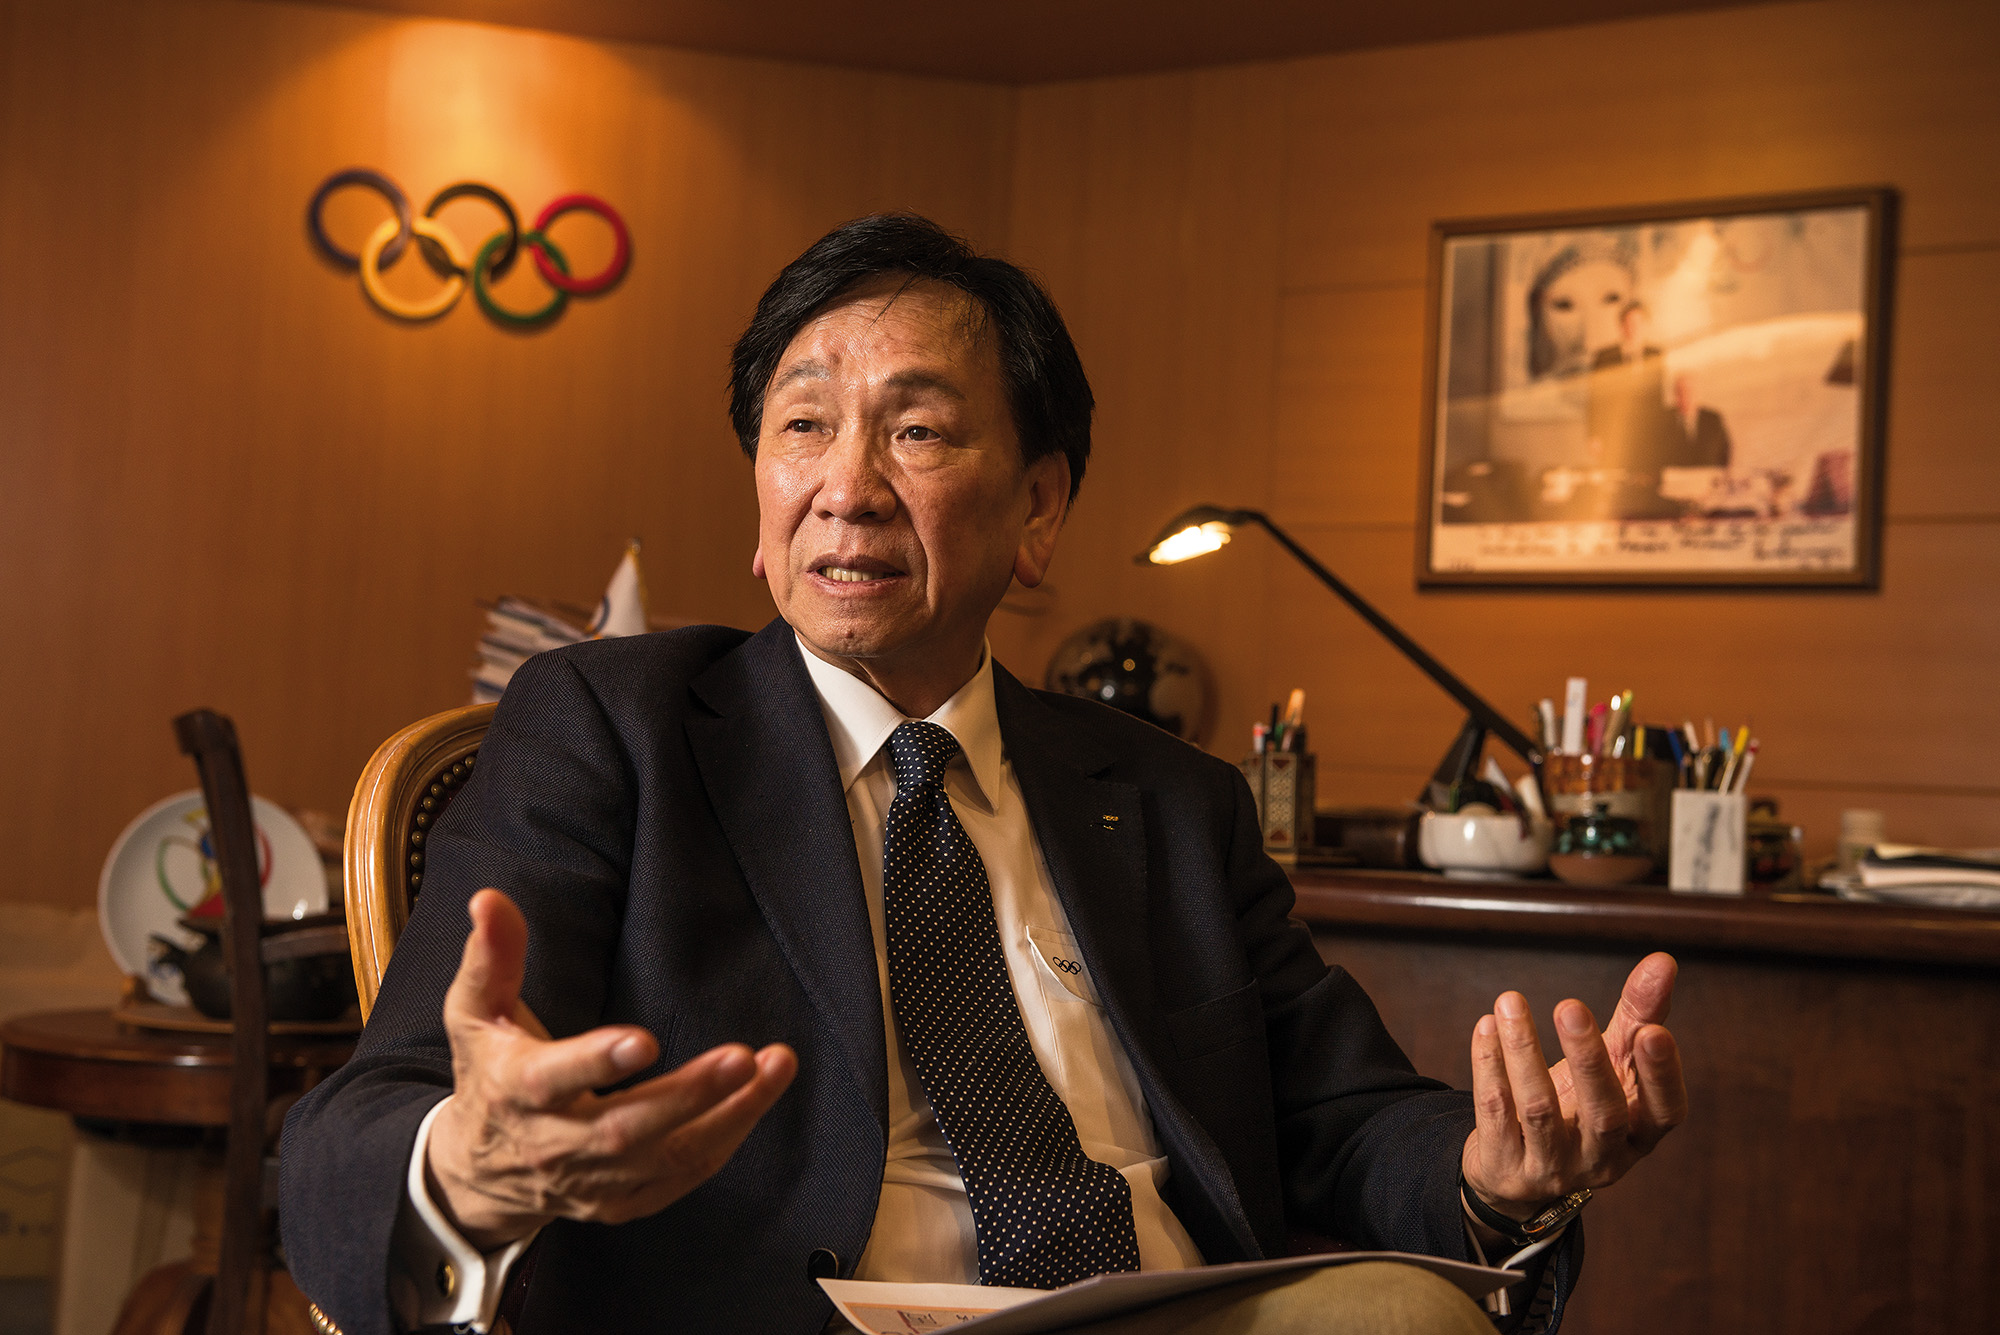 Wu Ching-kuo hopes that the development of athletics in Taiwan and greater media coverage will lead to sports playing a greater role in people's lives. (photo by Chuang Kung-ju)